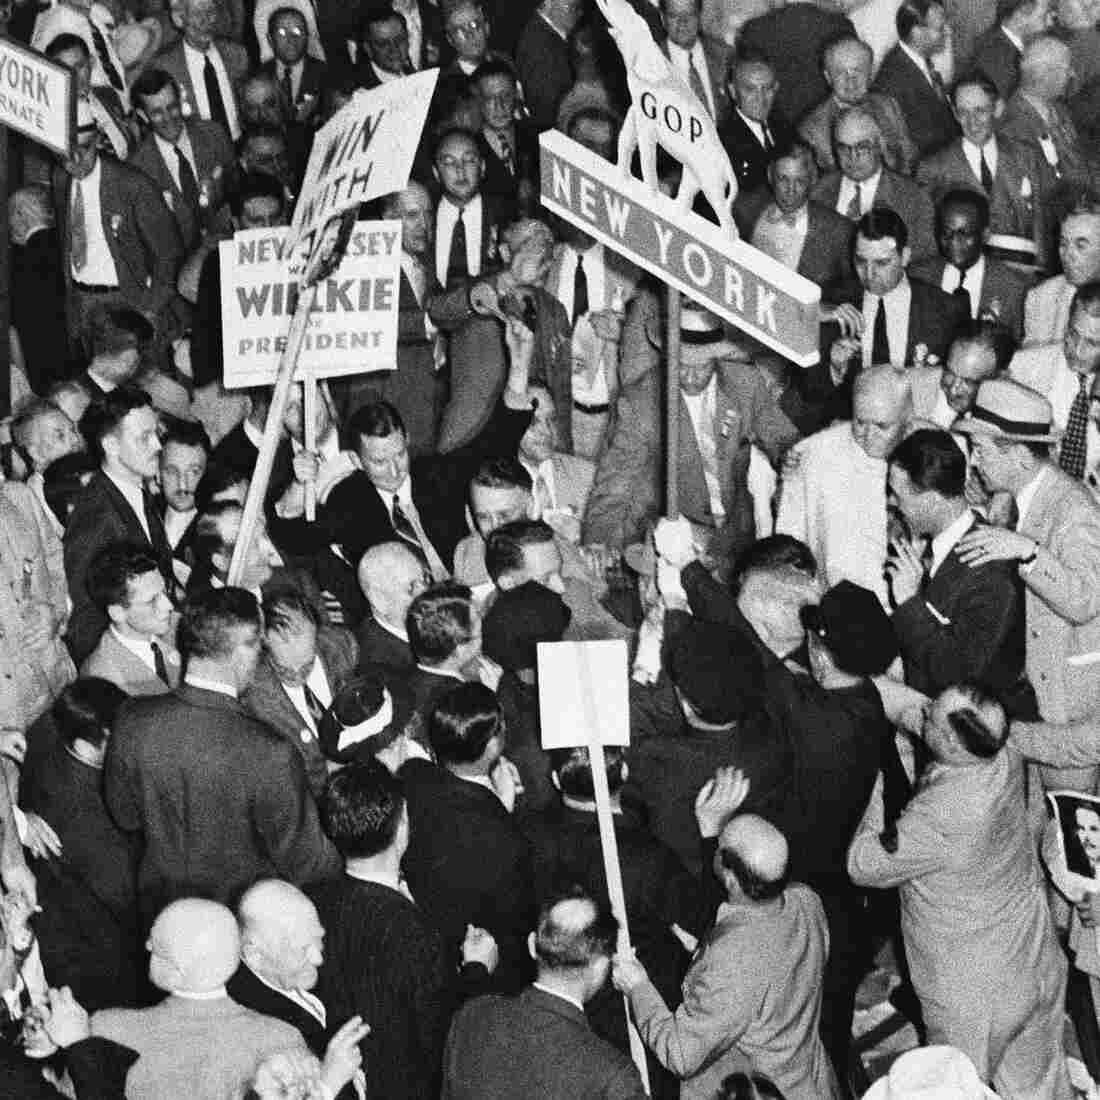 After Wendell Wilkie was nominated in Philadelphia in 1940, Wilkie adherents in the New York delegation tried to take the state banner into the parade and Dewey friends to keep it out.